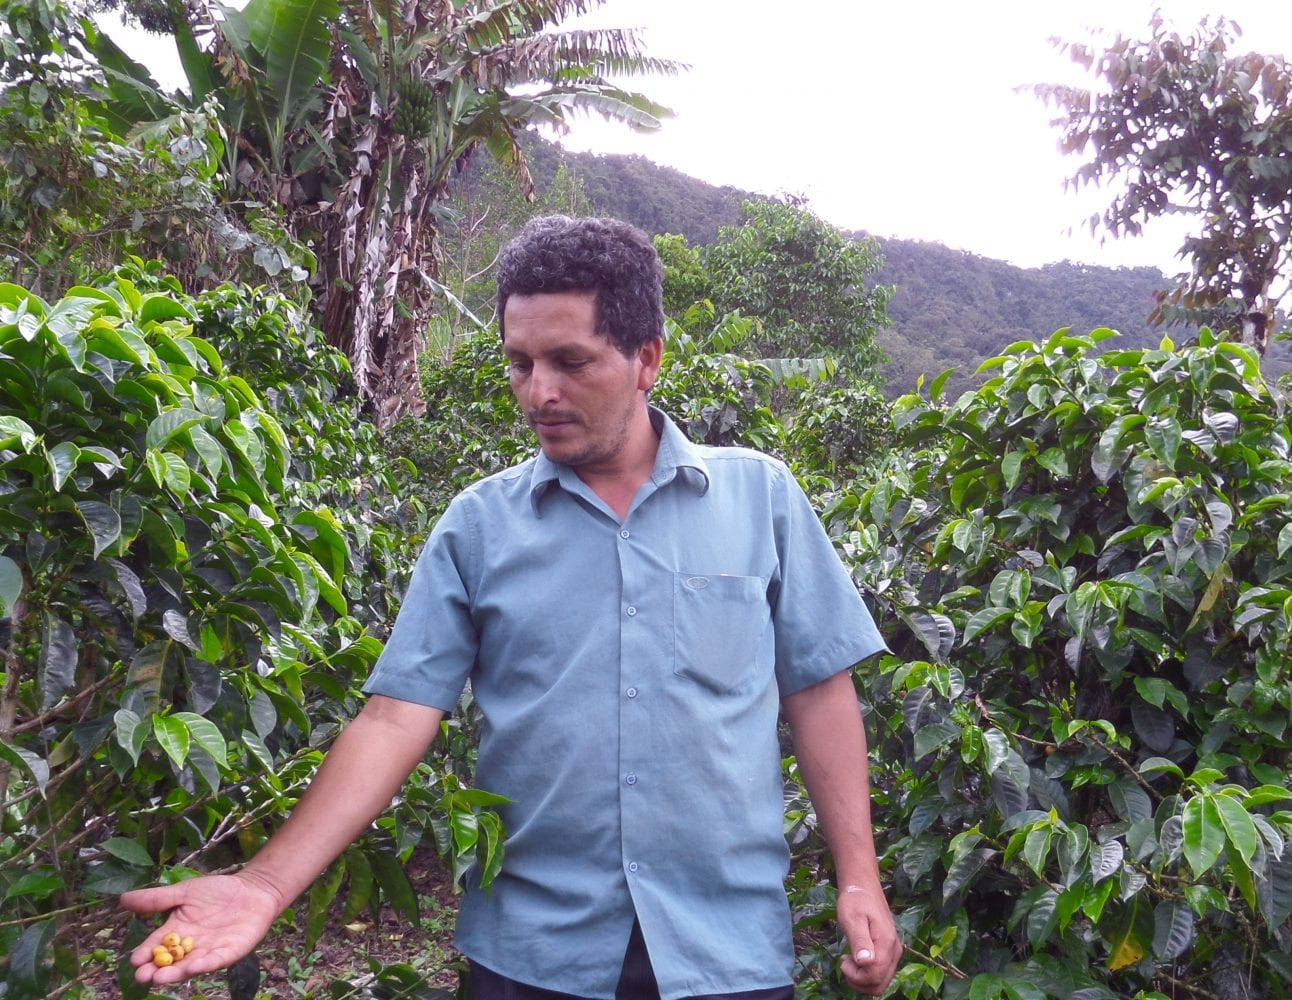 Don Jose examining some Yellow Caturra cherries